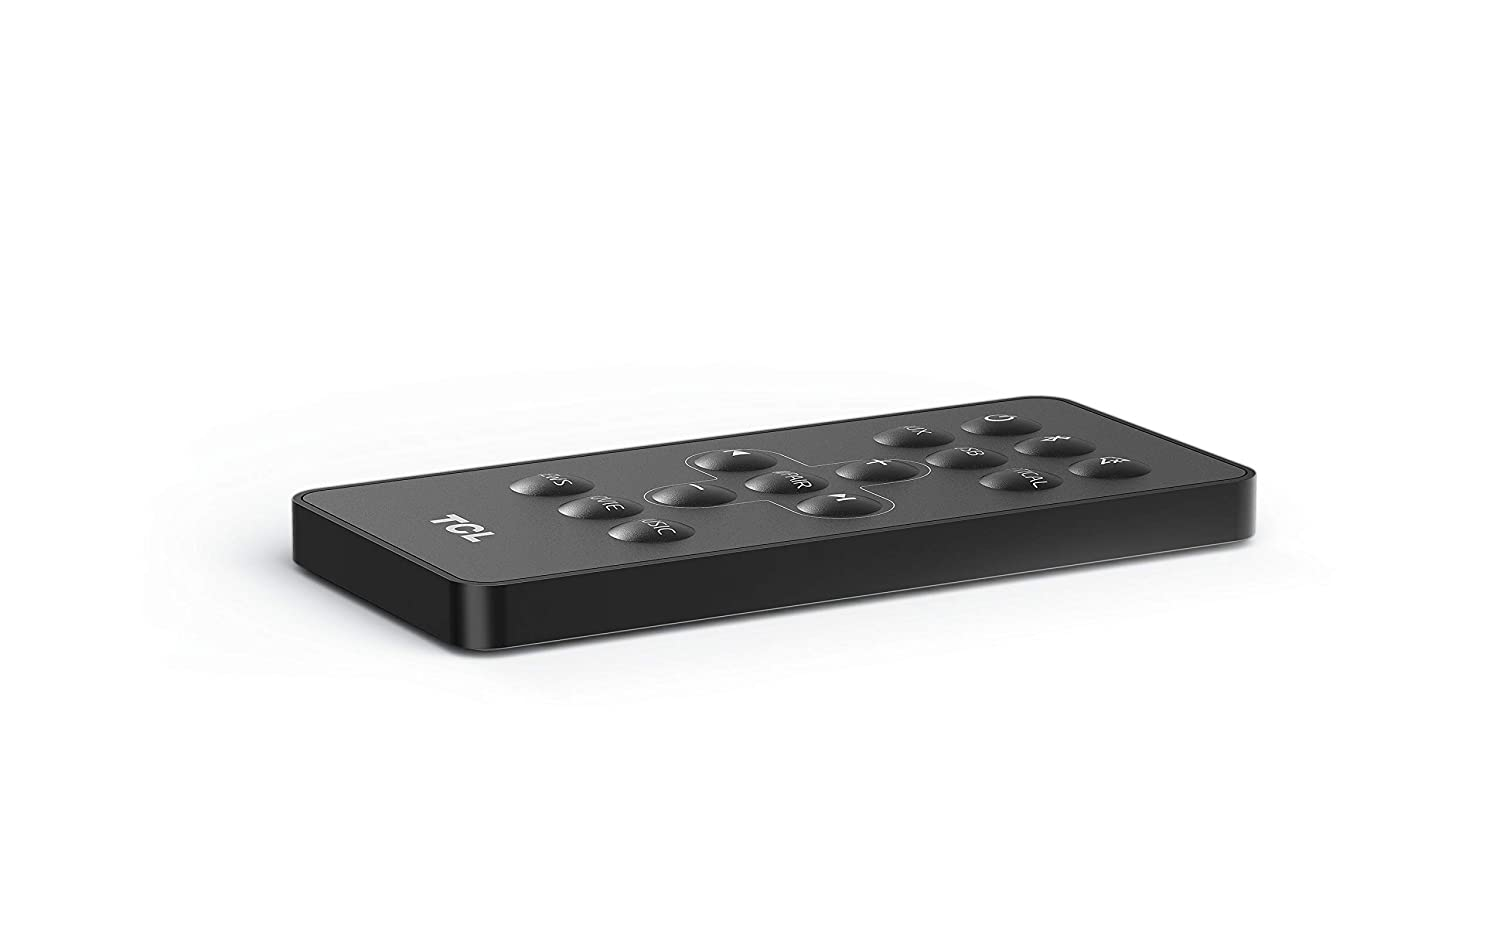 TS7010 2.1 Channel Home Theater Sound Bar with Wireless Subwoofer TCL Alto 7